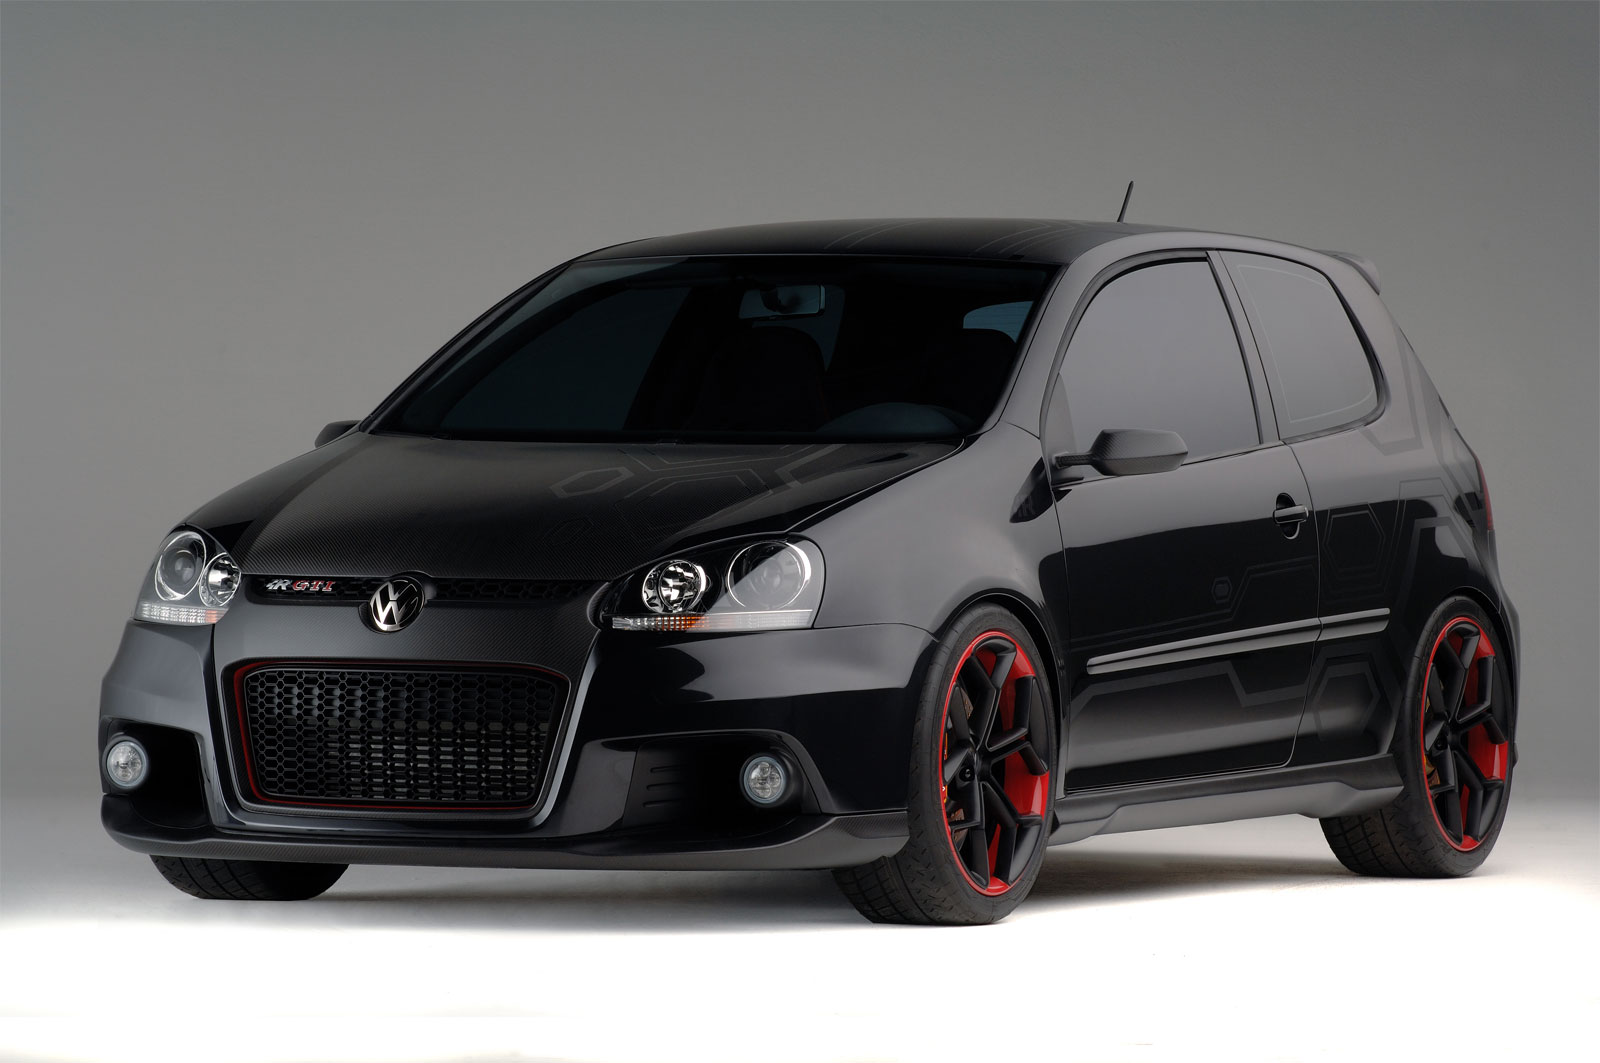 All Types gti 2006 : 2006 Volkswagen R GTI Concept Pictures, History, Value, Research ...